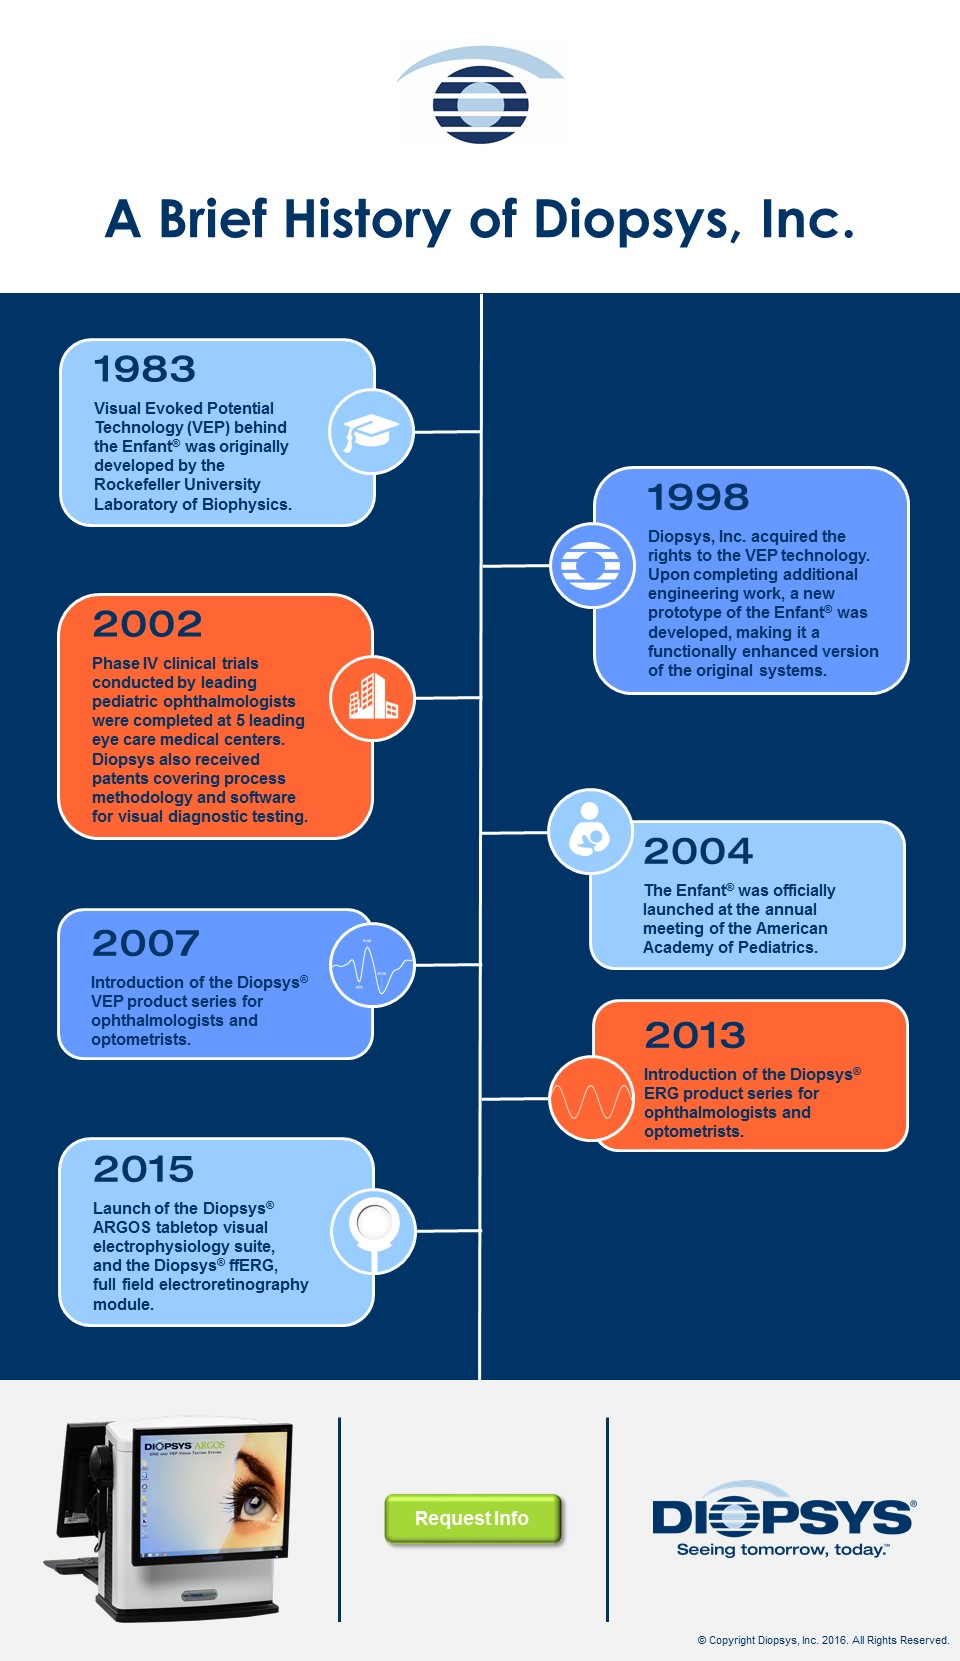 A_Brief_History_of_Diopsys